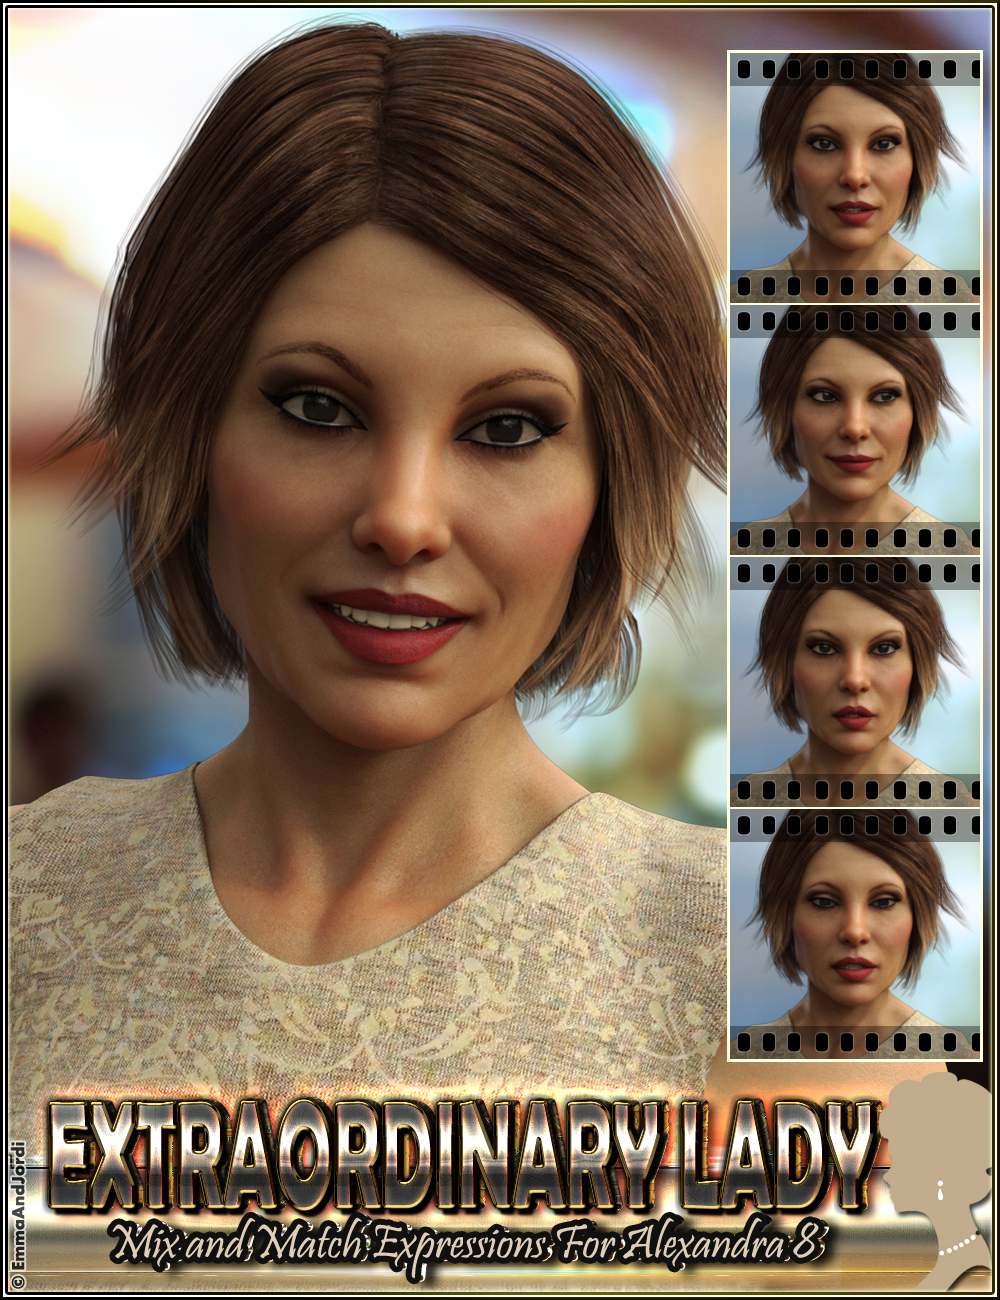 Extraordinary Lady Mix and Match Expressions for Alexandra 8 and Genesis 8 Female(s) by: EmmaAndJordi, 3D Models by Daz 3D